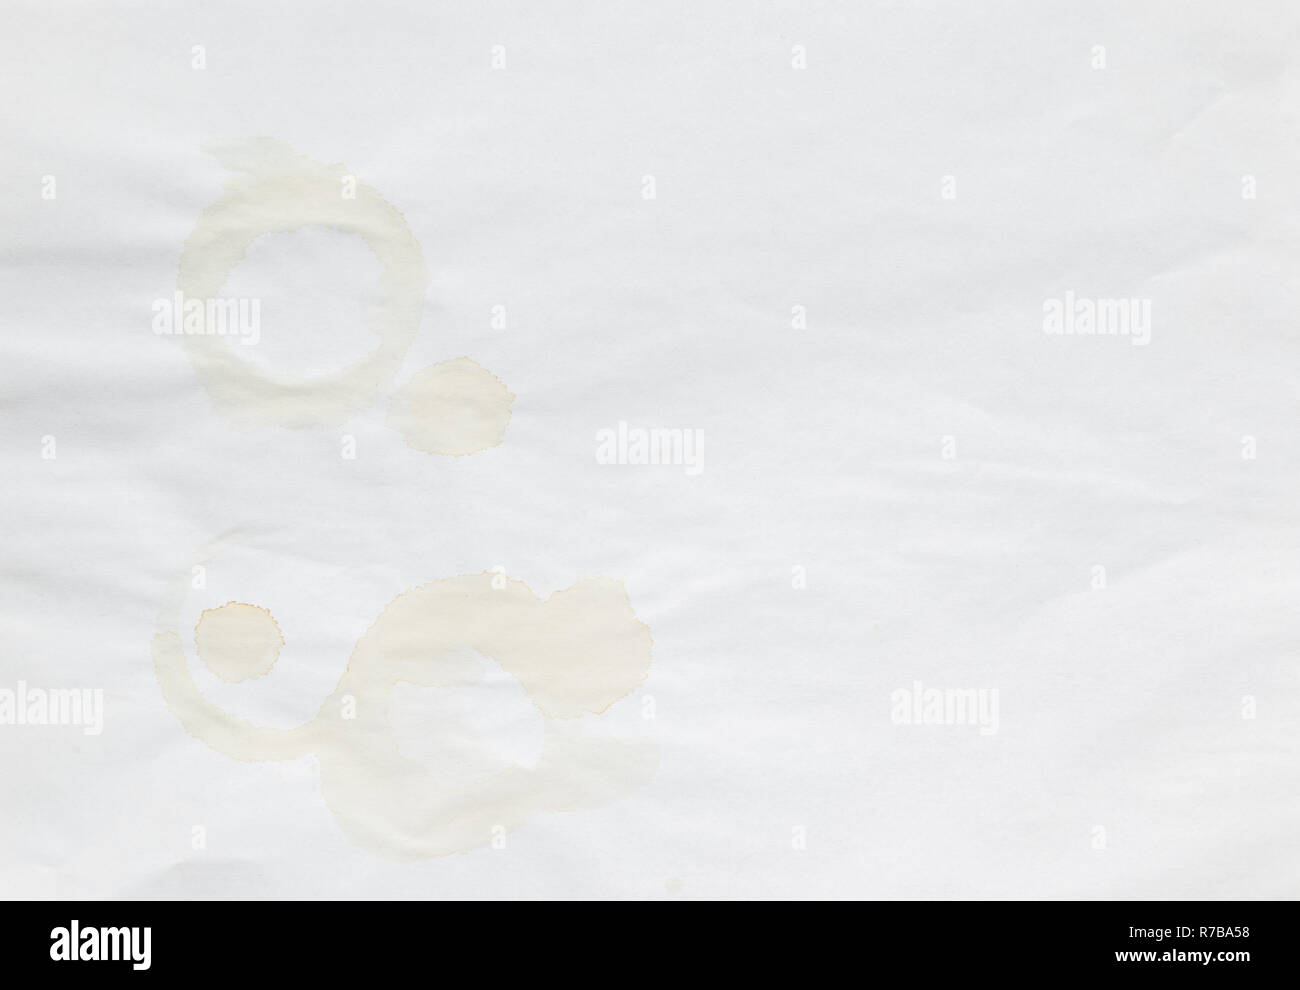 Full frame background of faded coffee cup stains on an old and uneven white paper sheet. - Stock Image